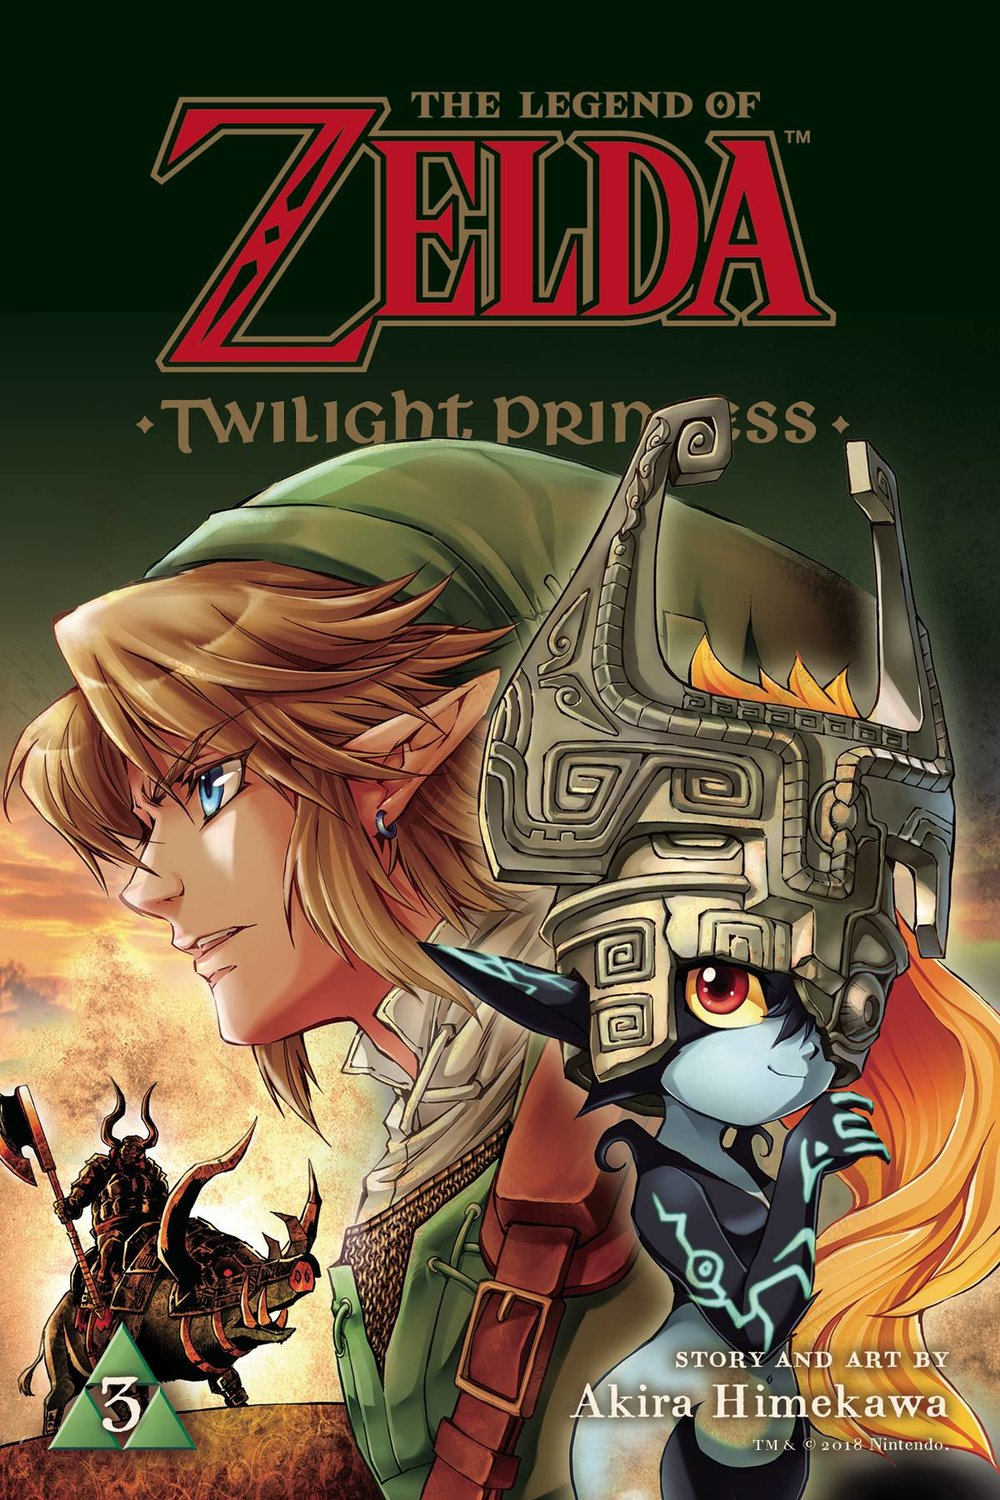 LEGEND OF ZELDA TWILIGHT PRINCESS GN 3.jpg